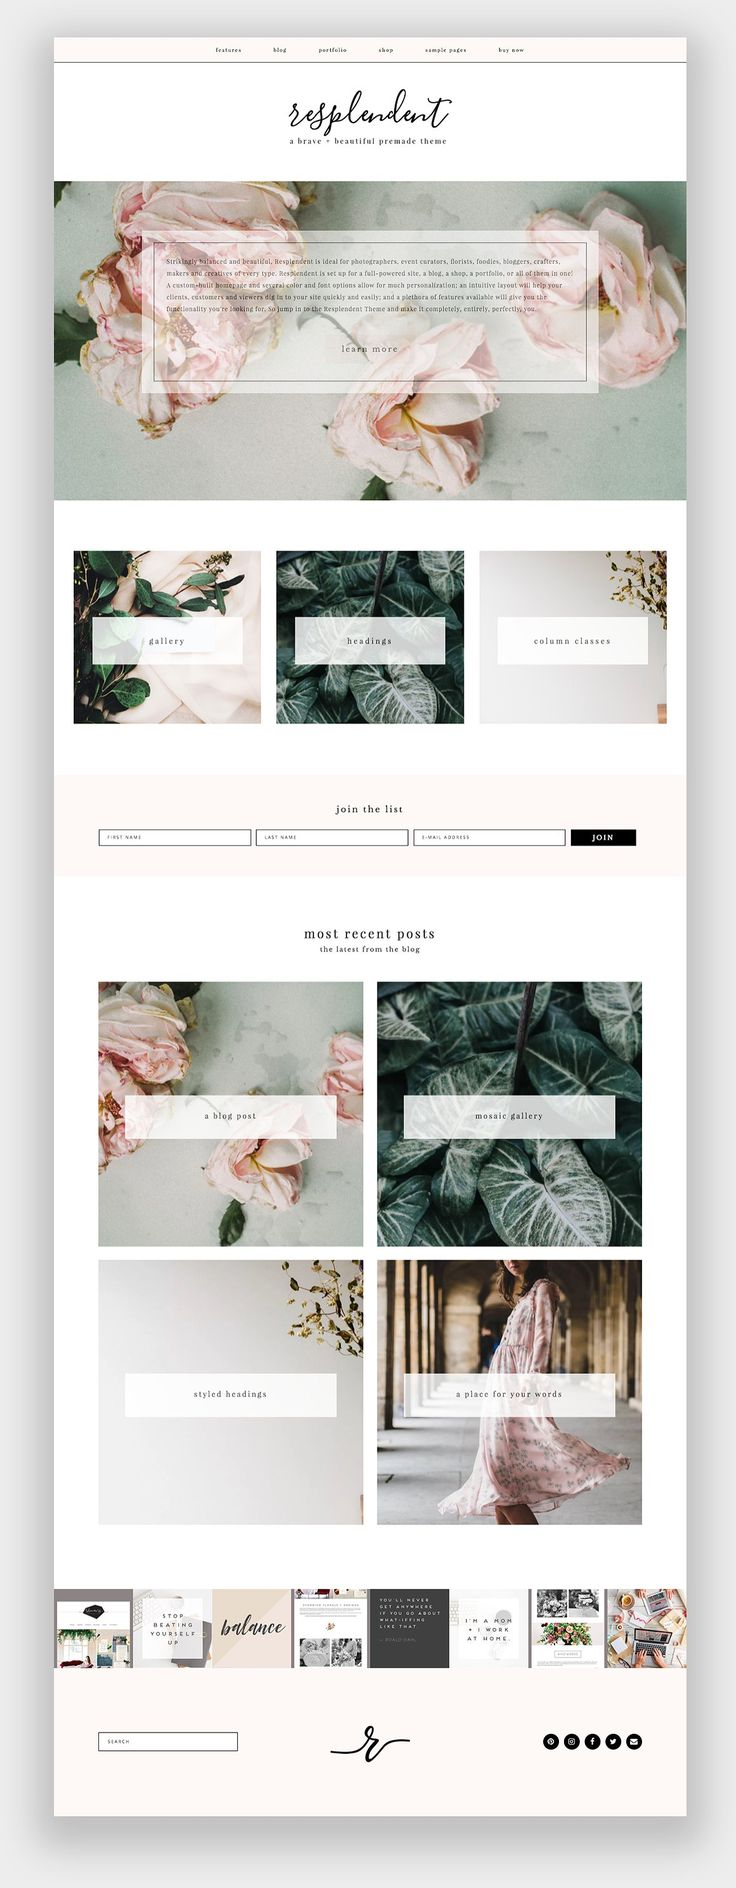 Resplendent Wordpress Theme - Photography